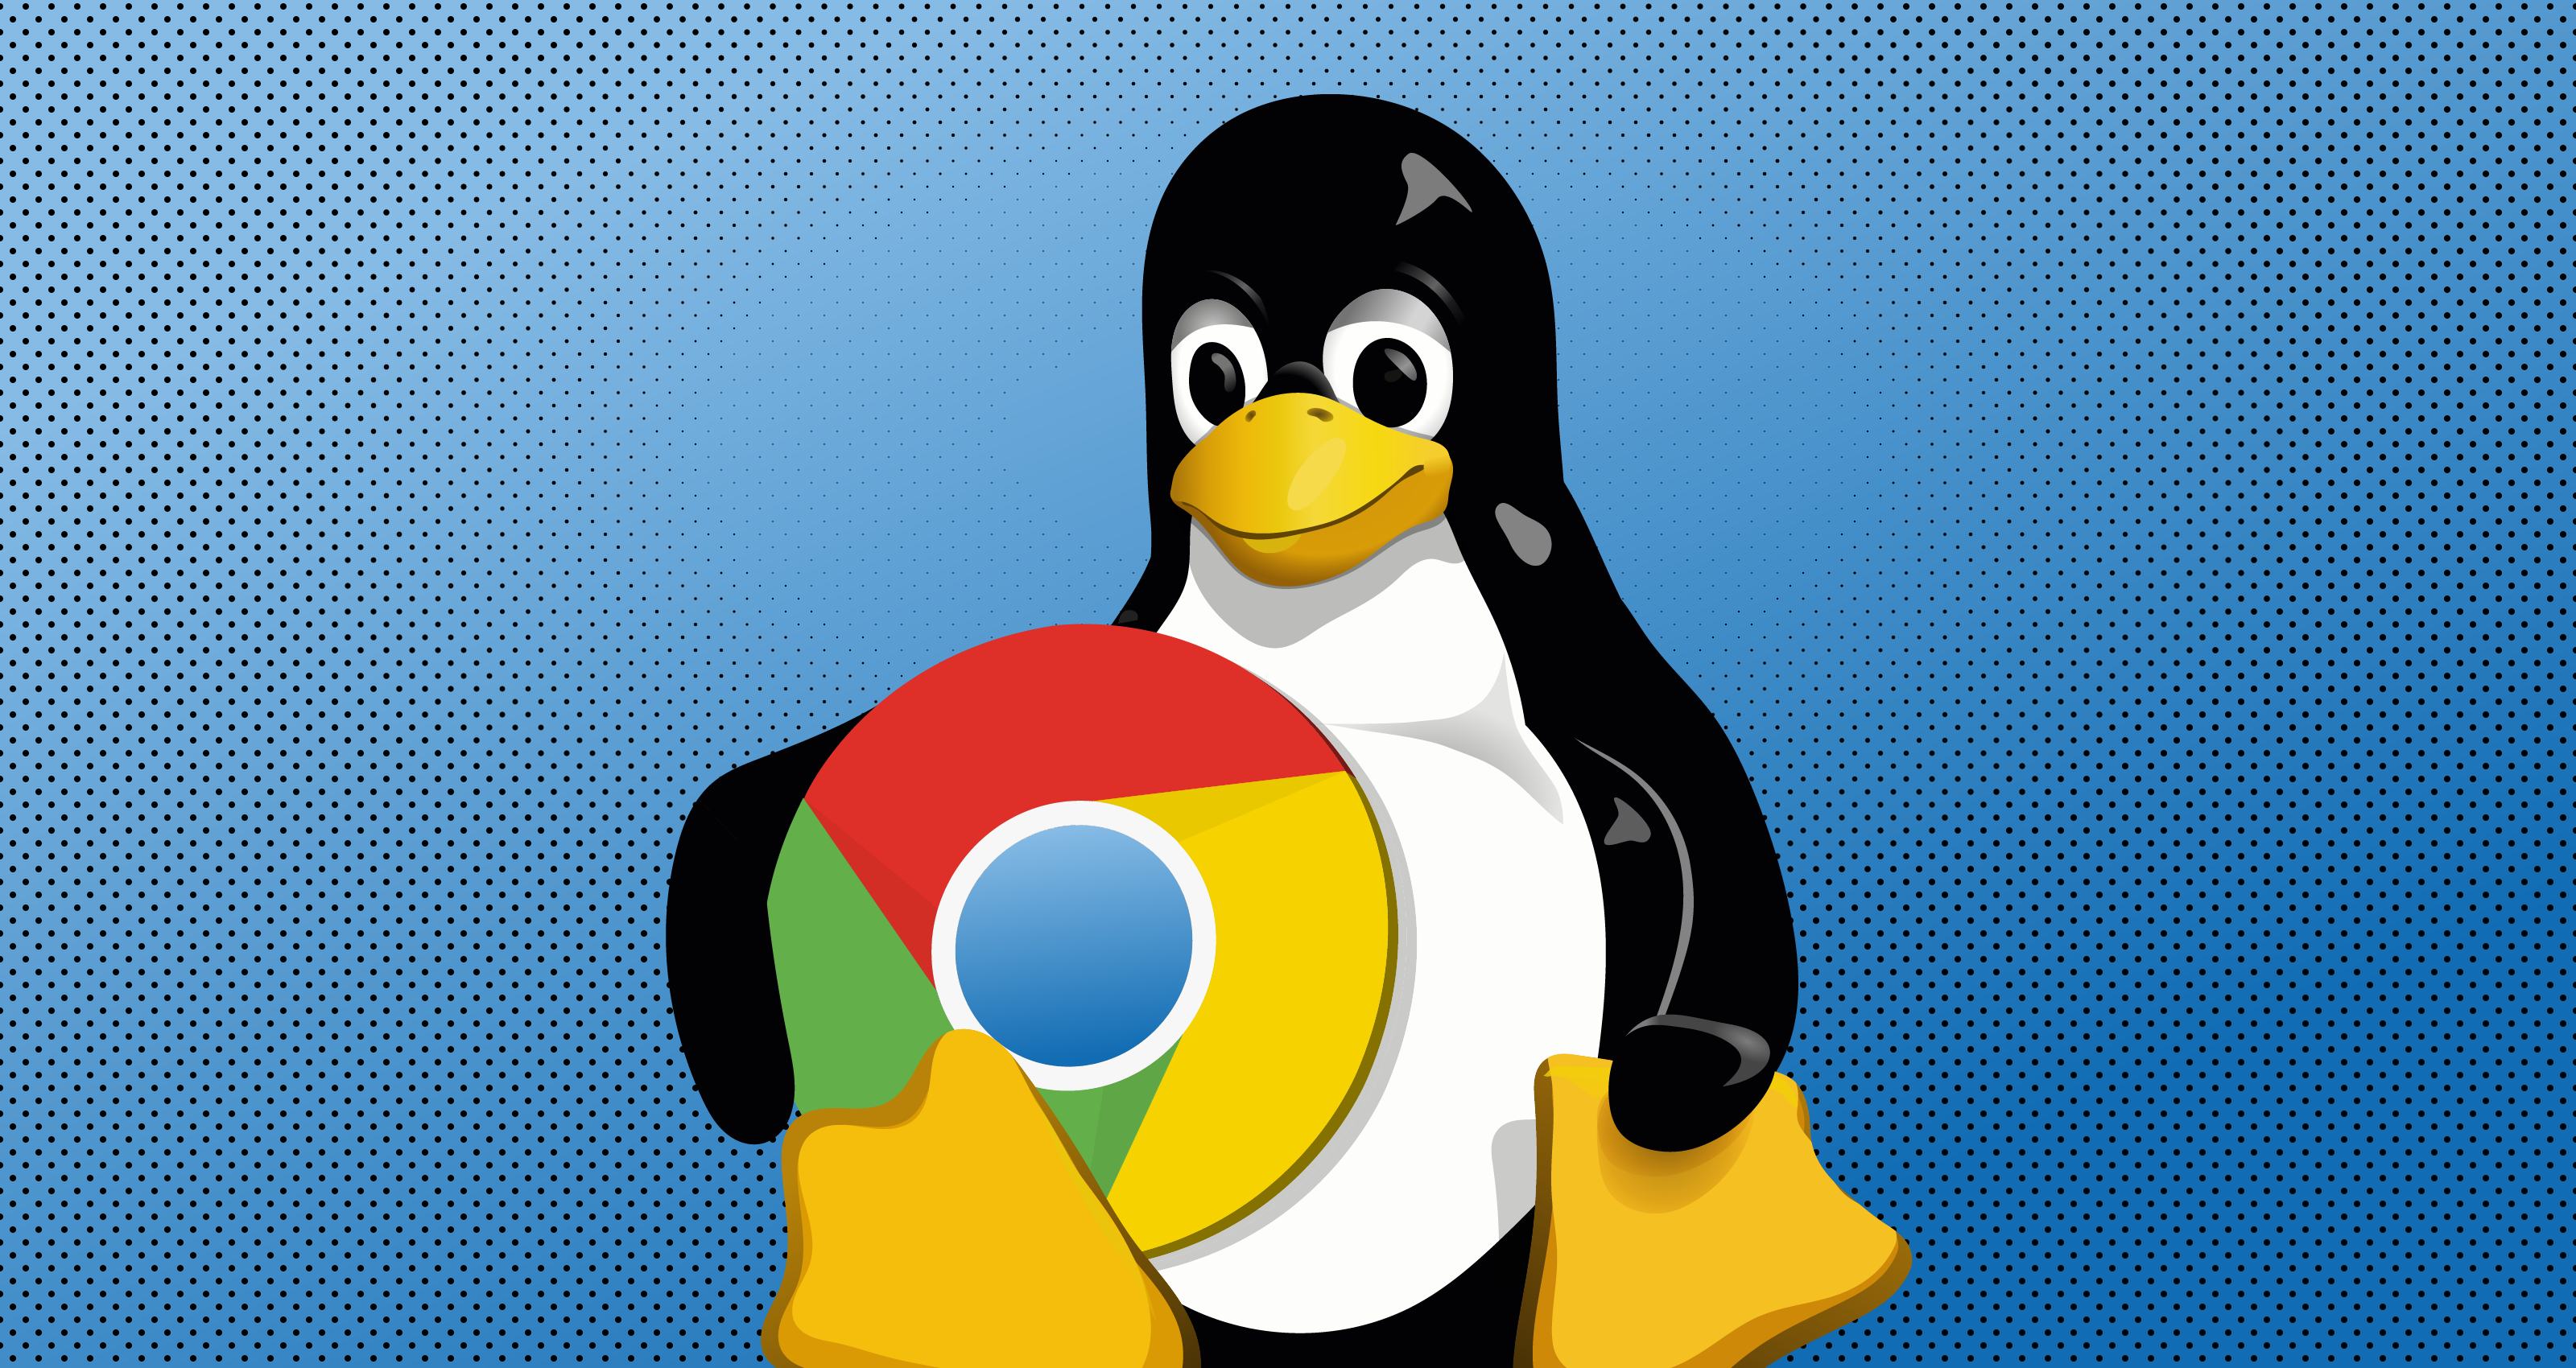 You Can Now Run Linux Apps On Chrome Os Techcrunch